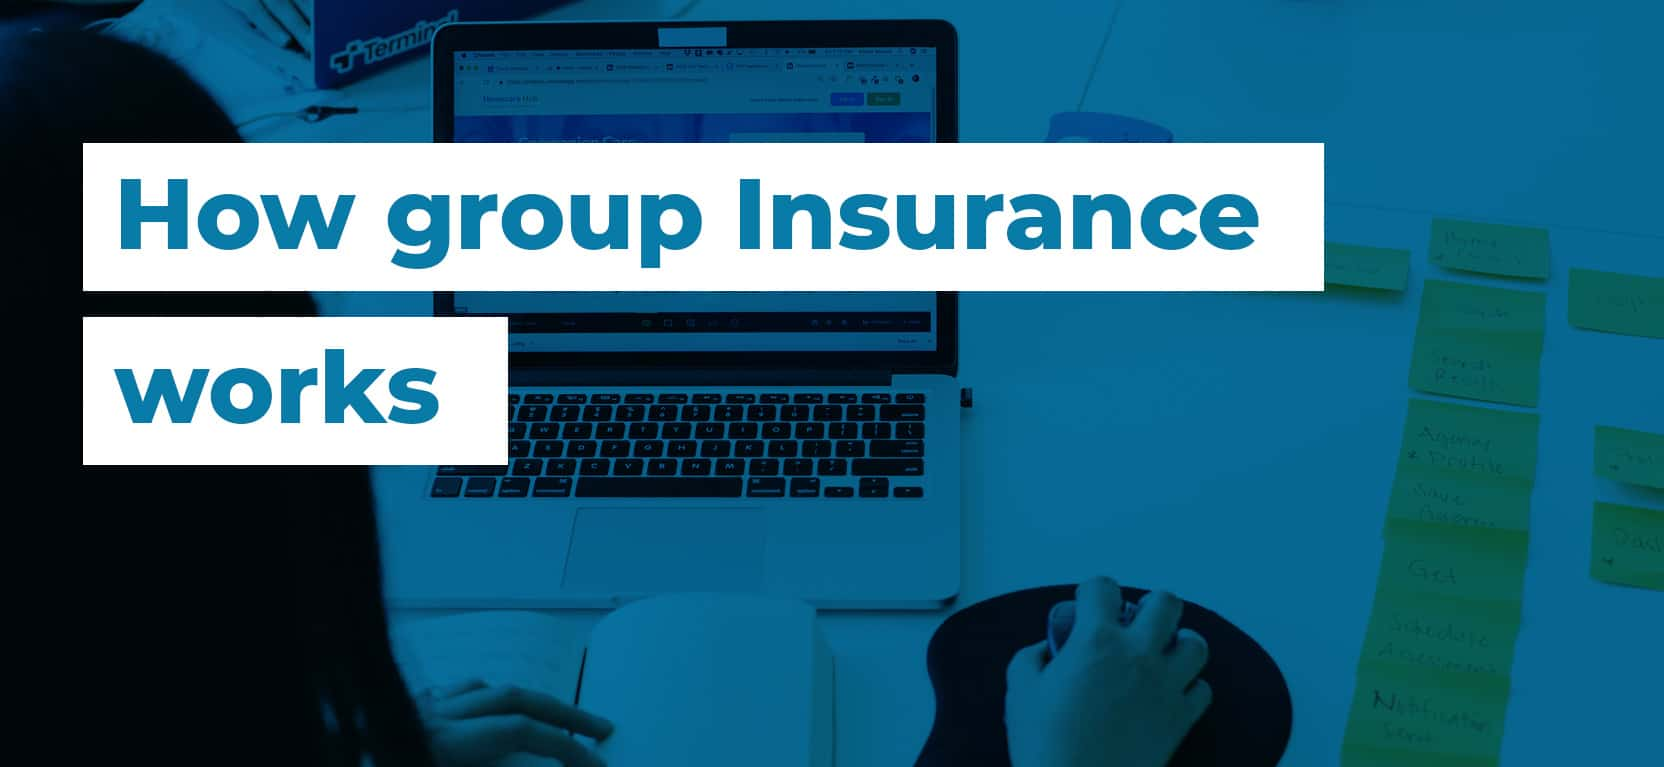 57 How group Insurance works2